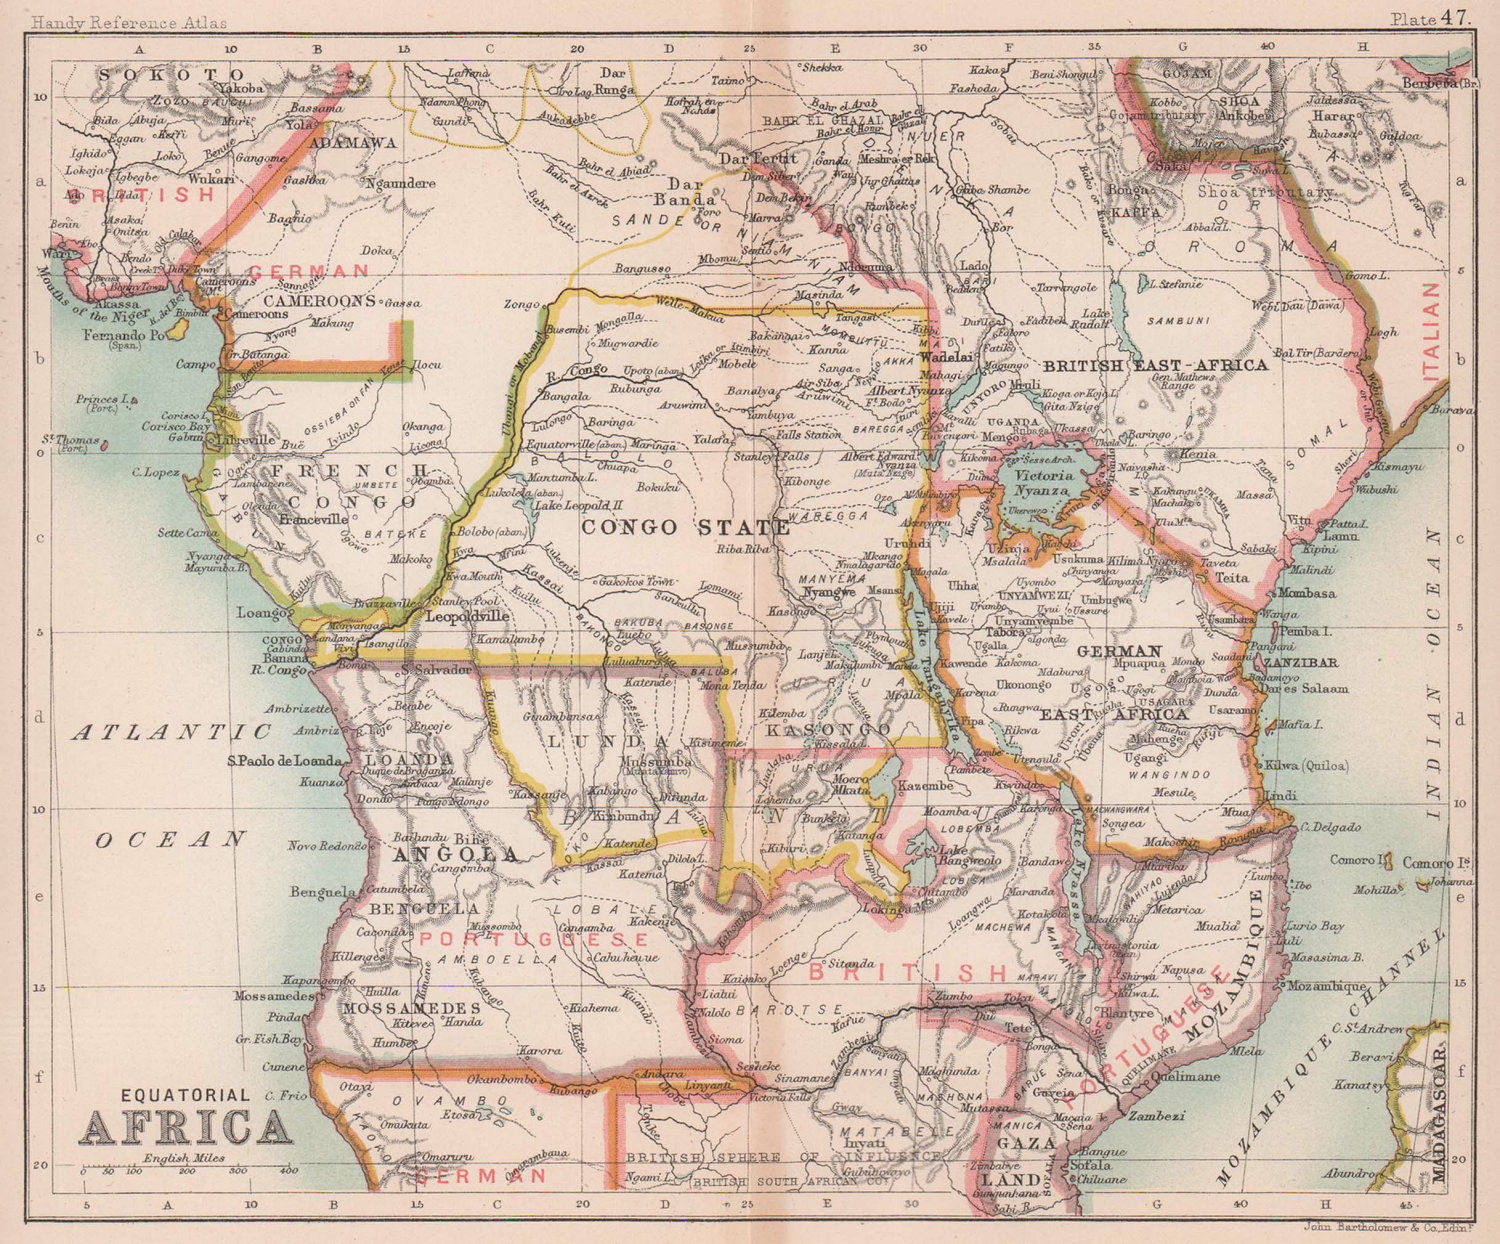 Colonial Equatorial / Central Africa. Congo Angola. BARTHOLOMEW 1893 old map